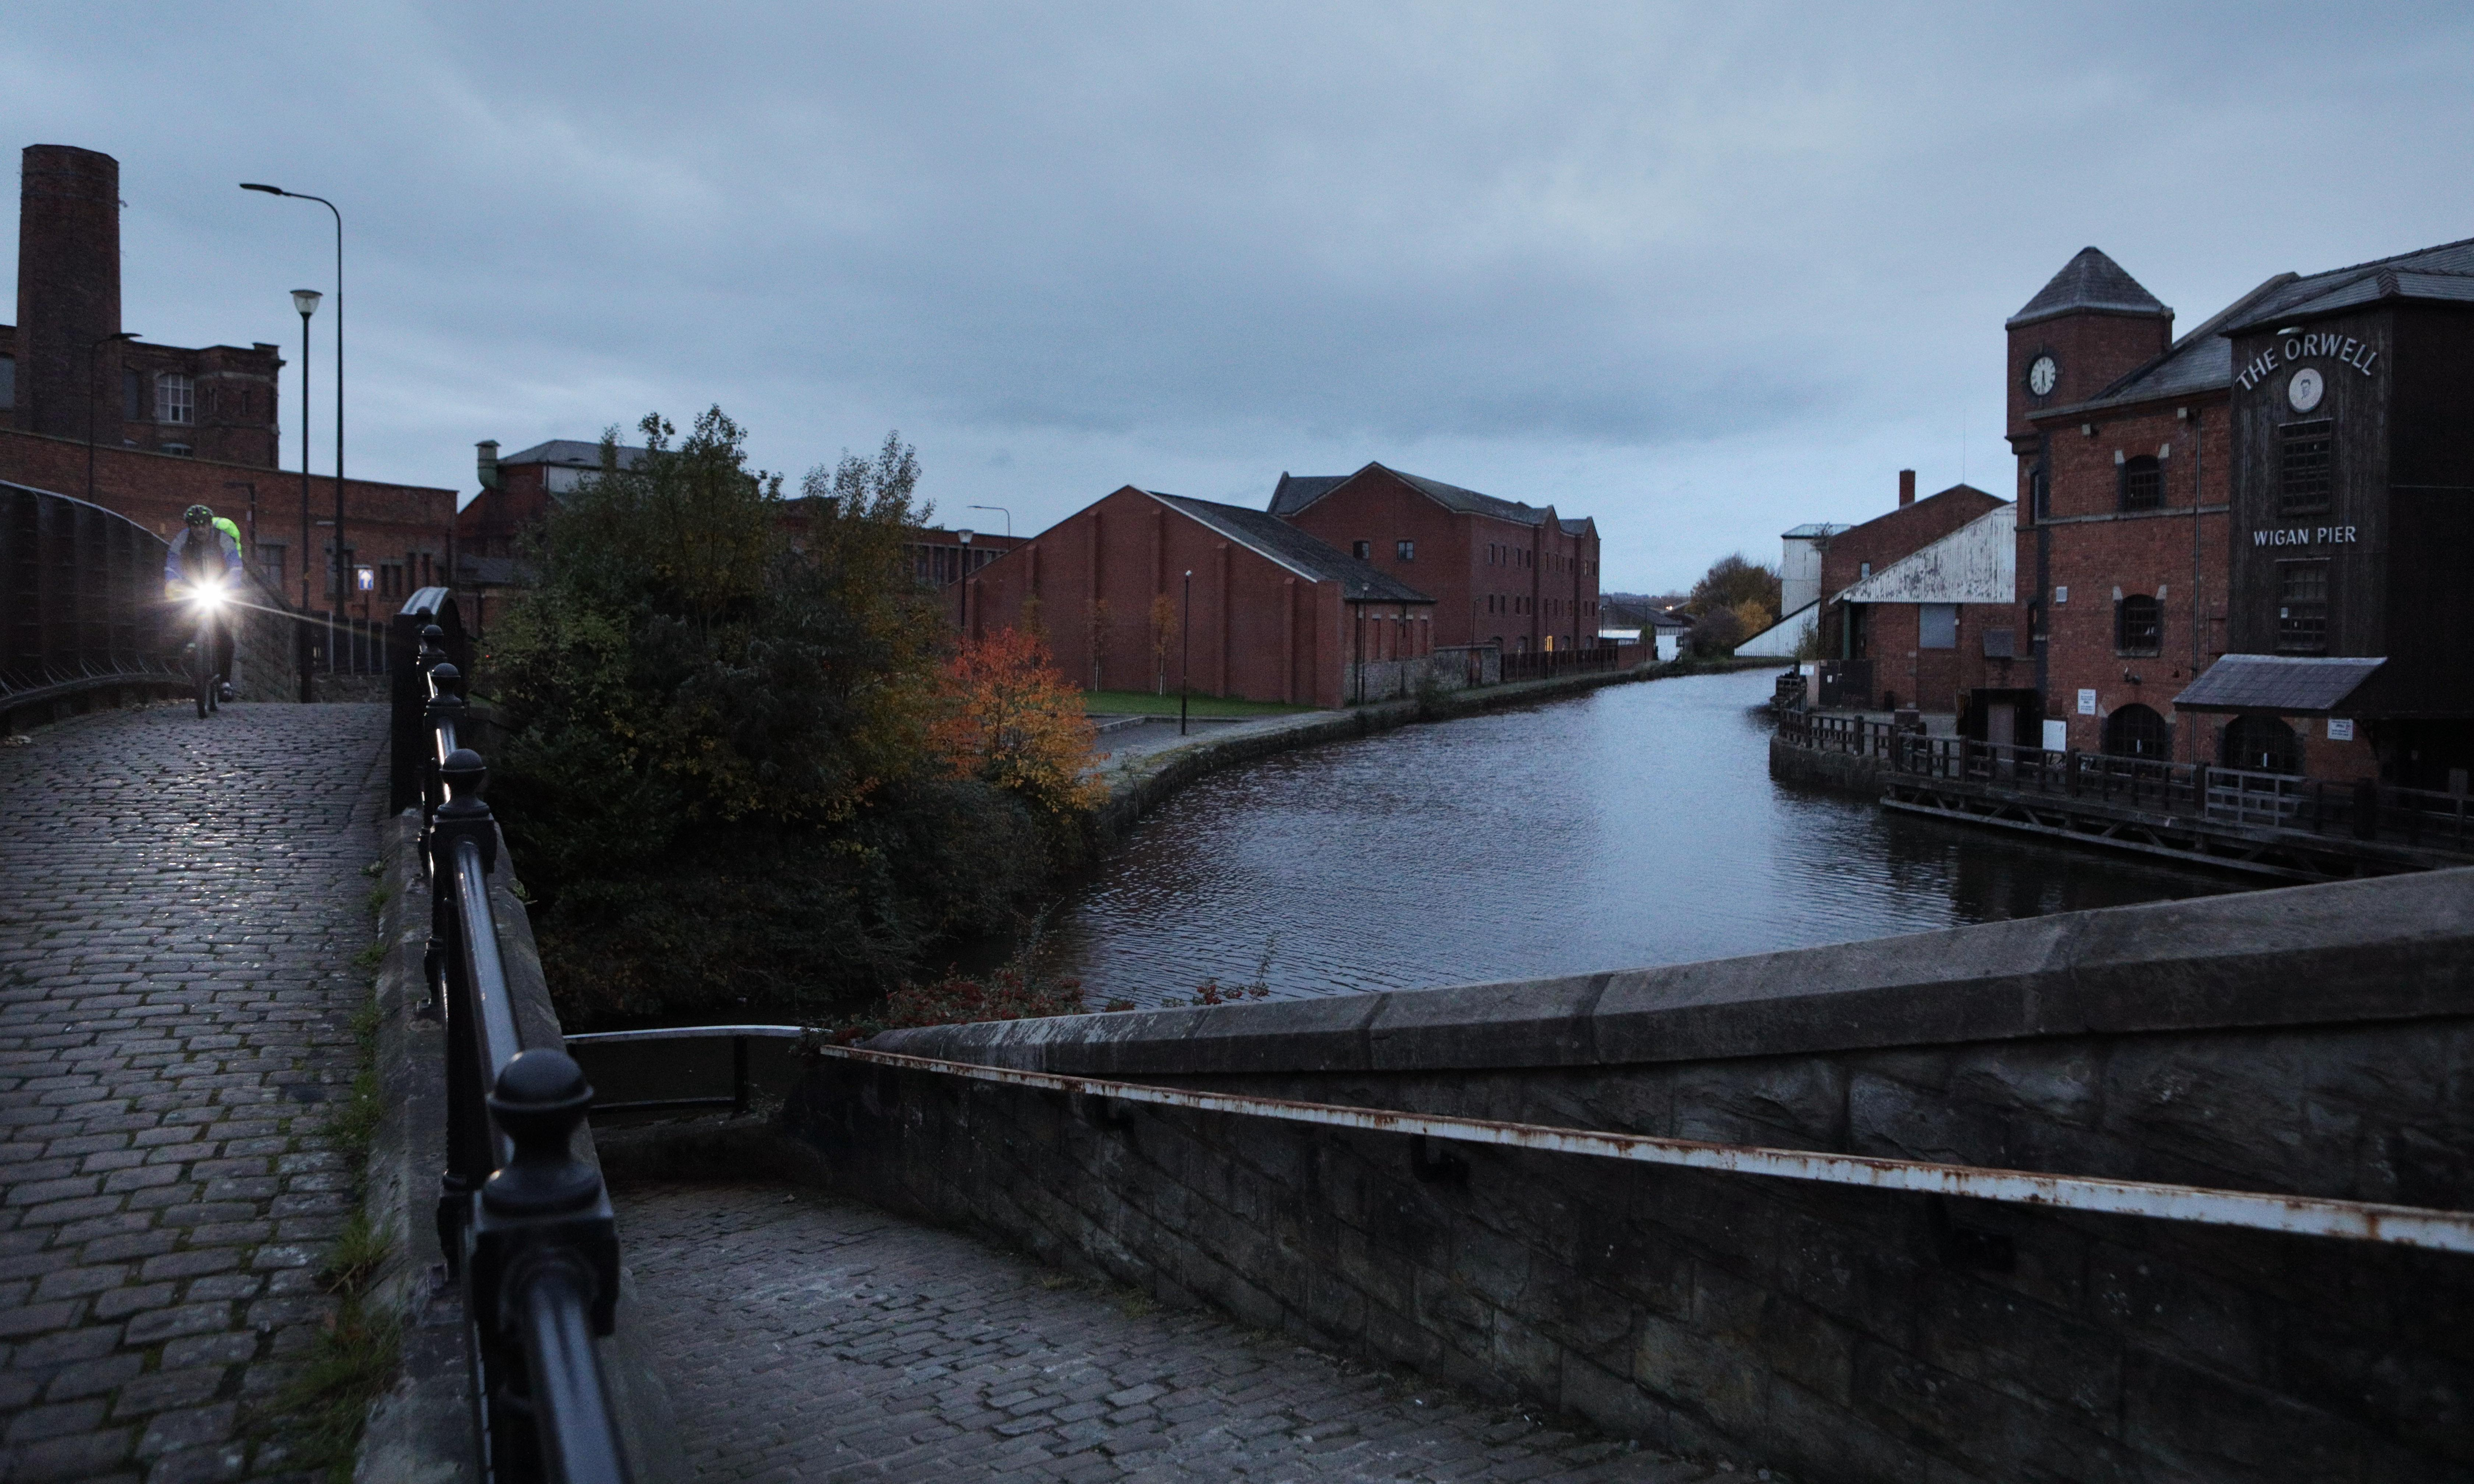 Wigan Pier to get makeover under new plans for site linked to Orwell